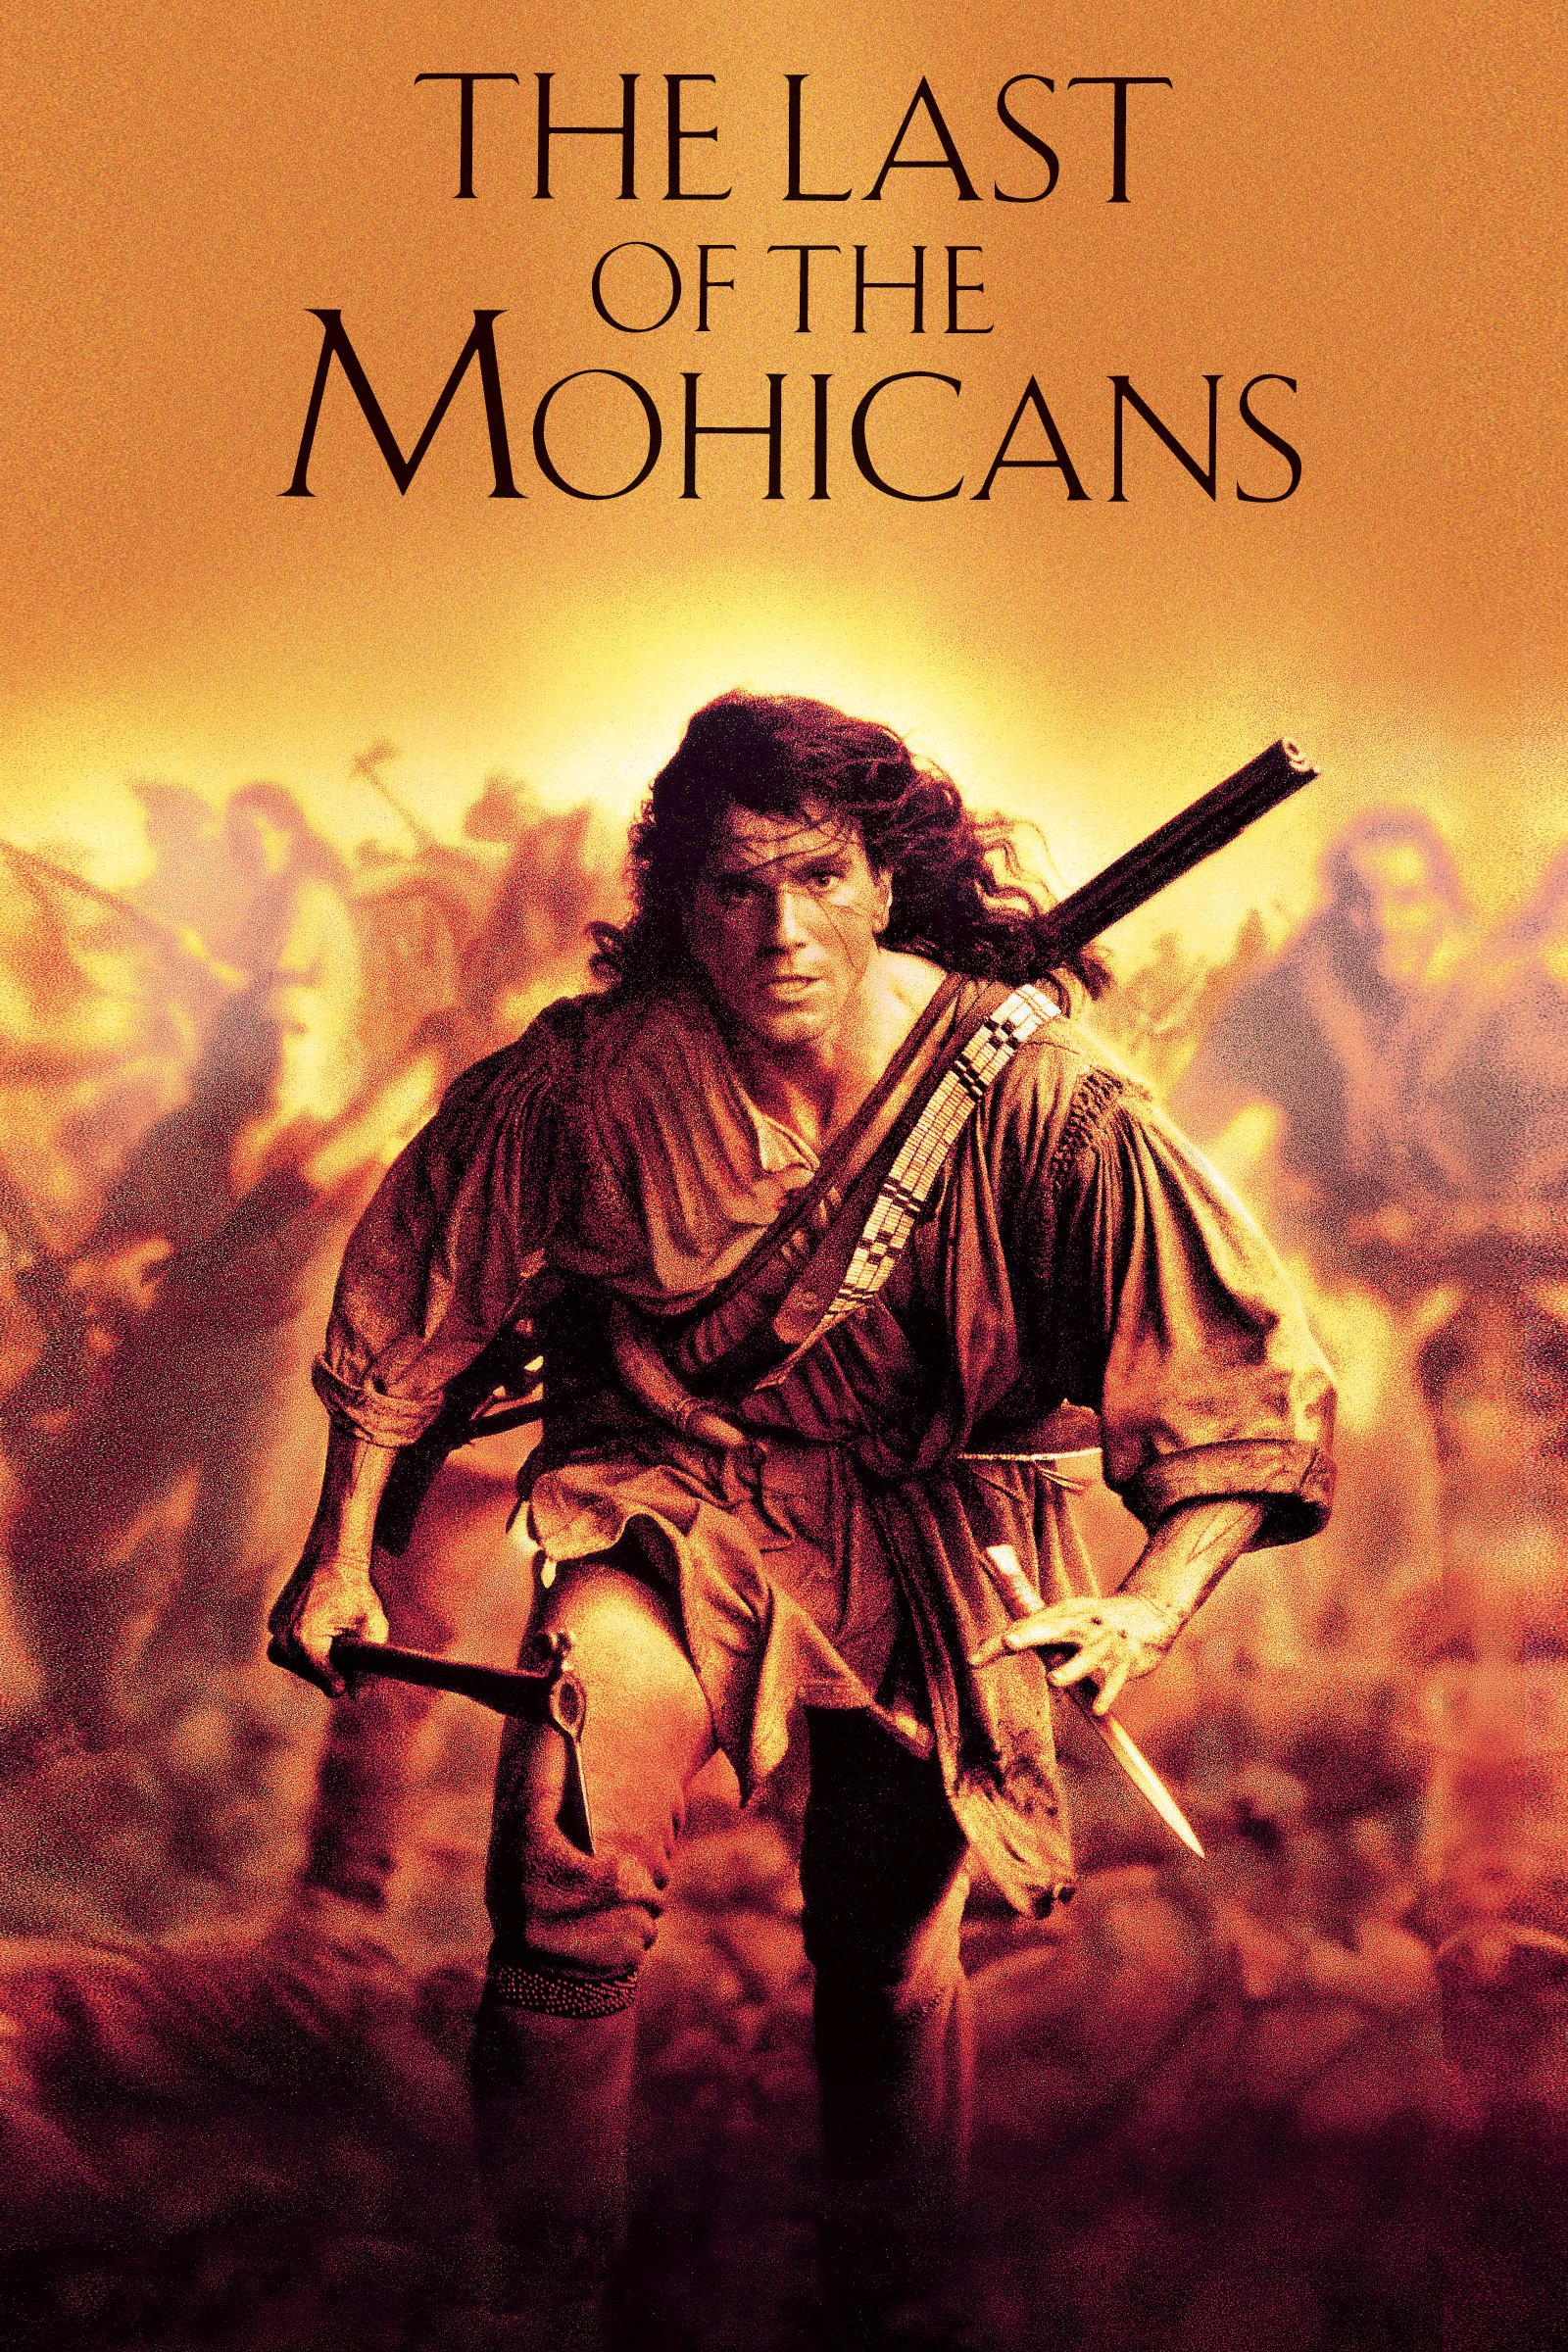 the last of the mohicans movie posters pinterest. Black Bedroom Furniture Sets. Home Design Ideas